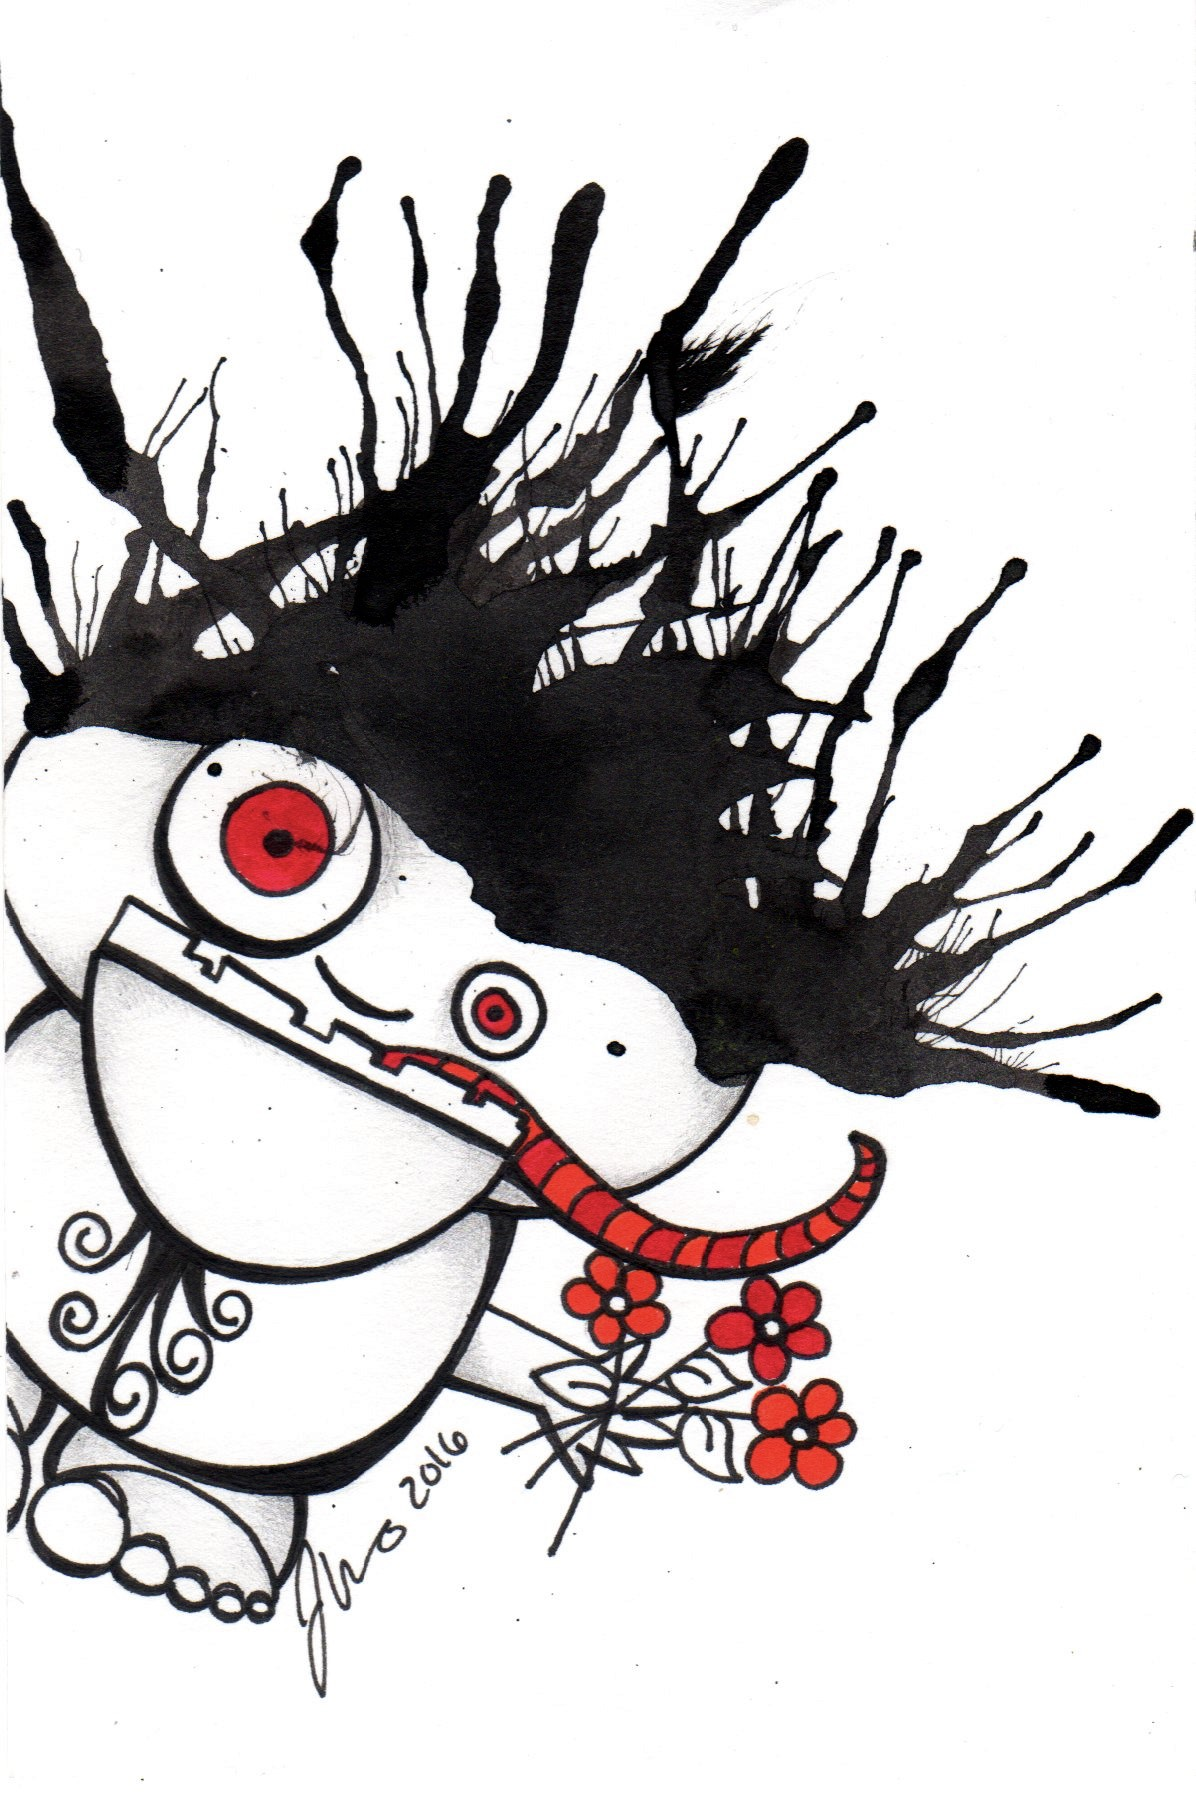 Ink Blot Monster #6